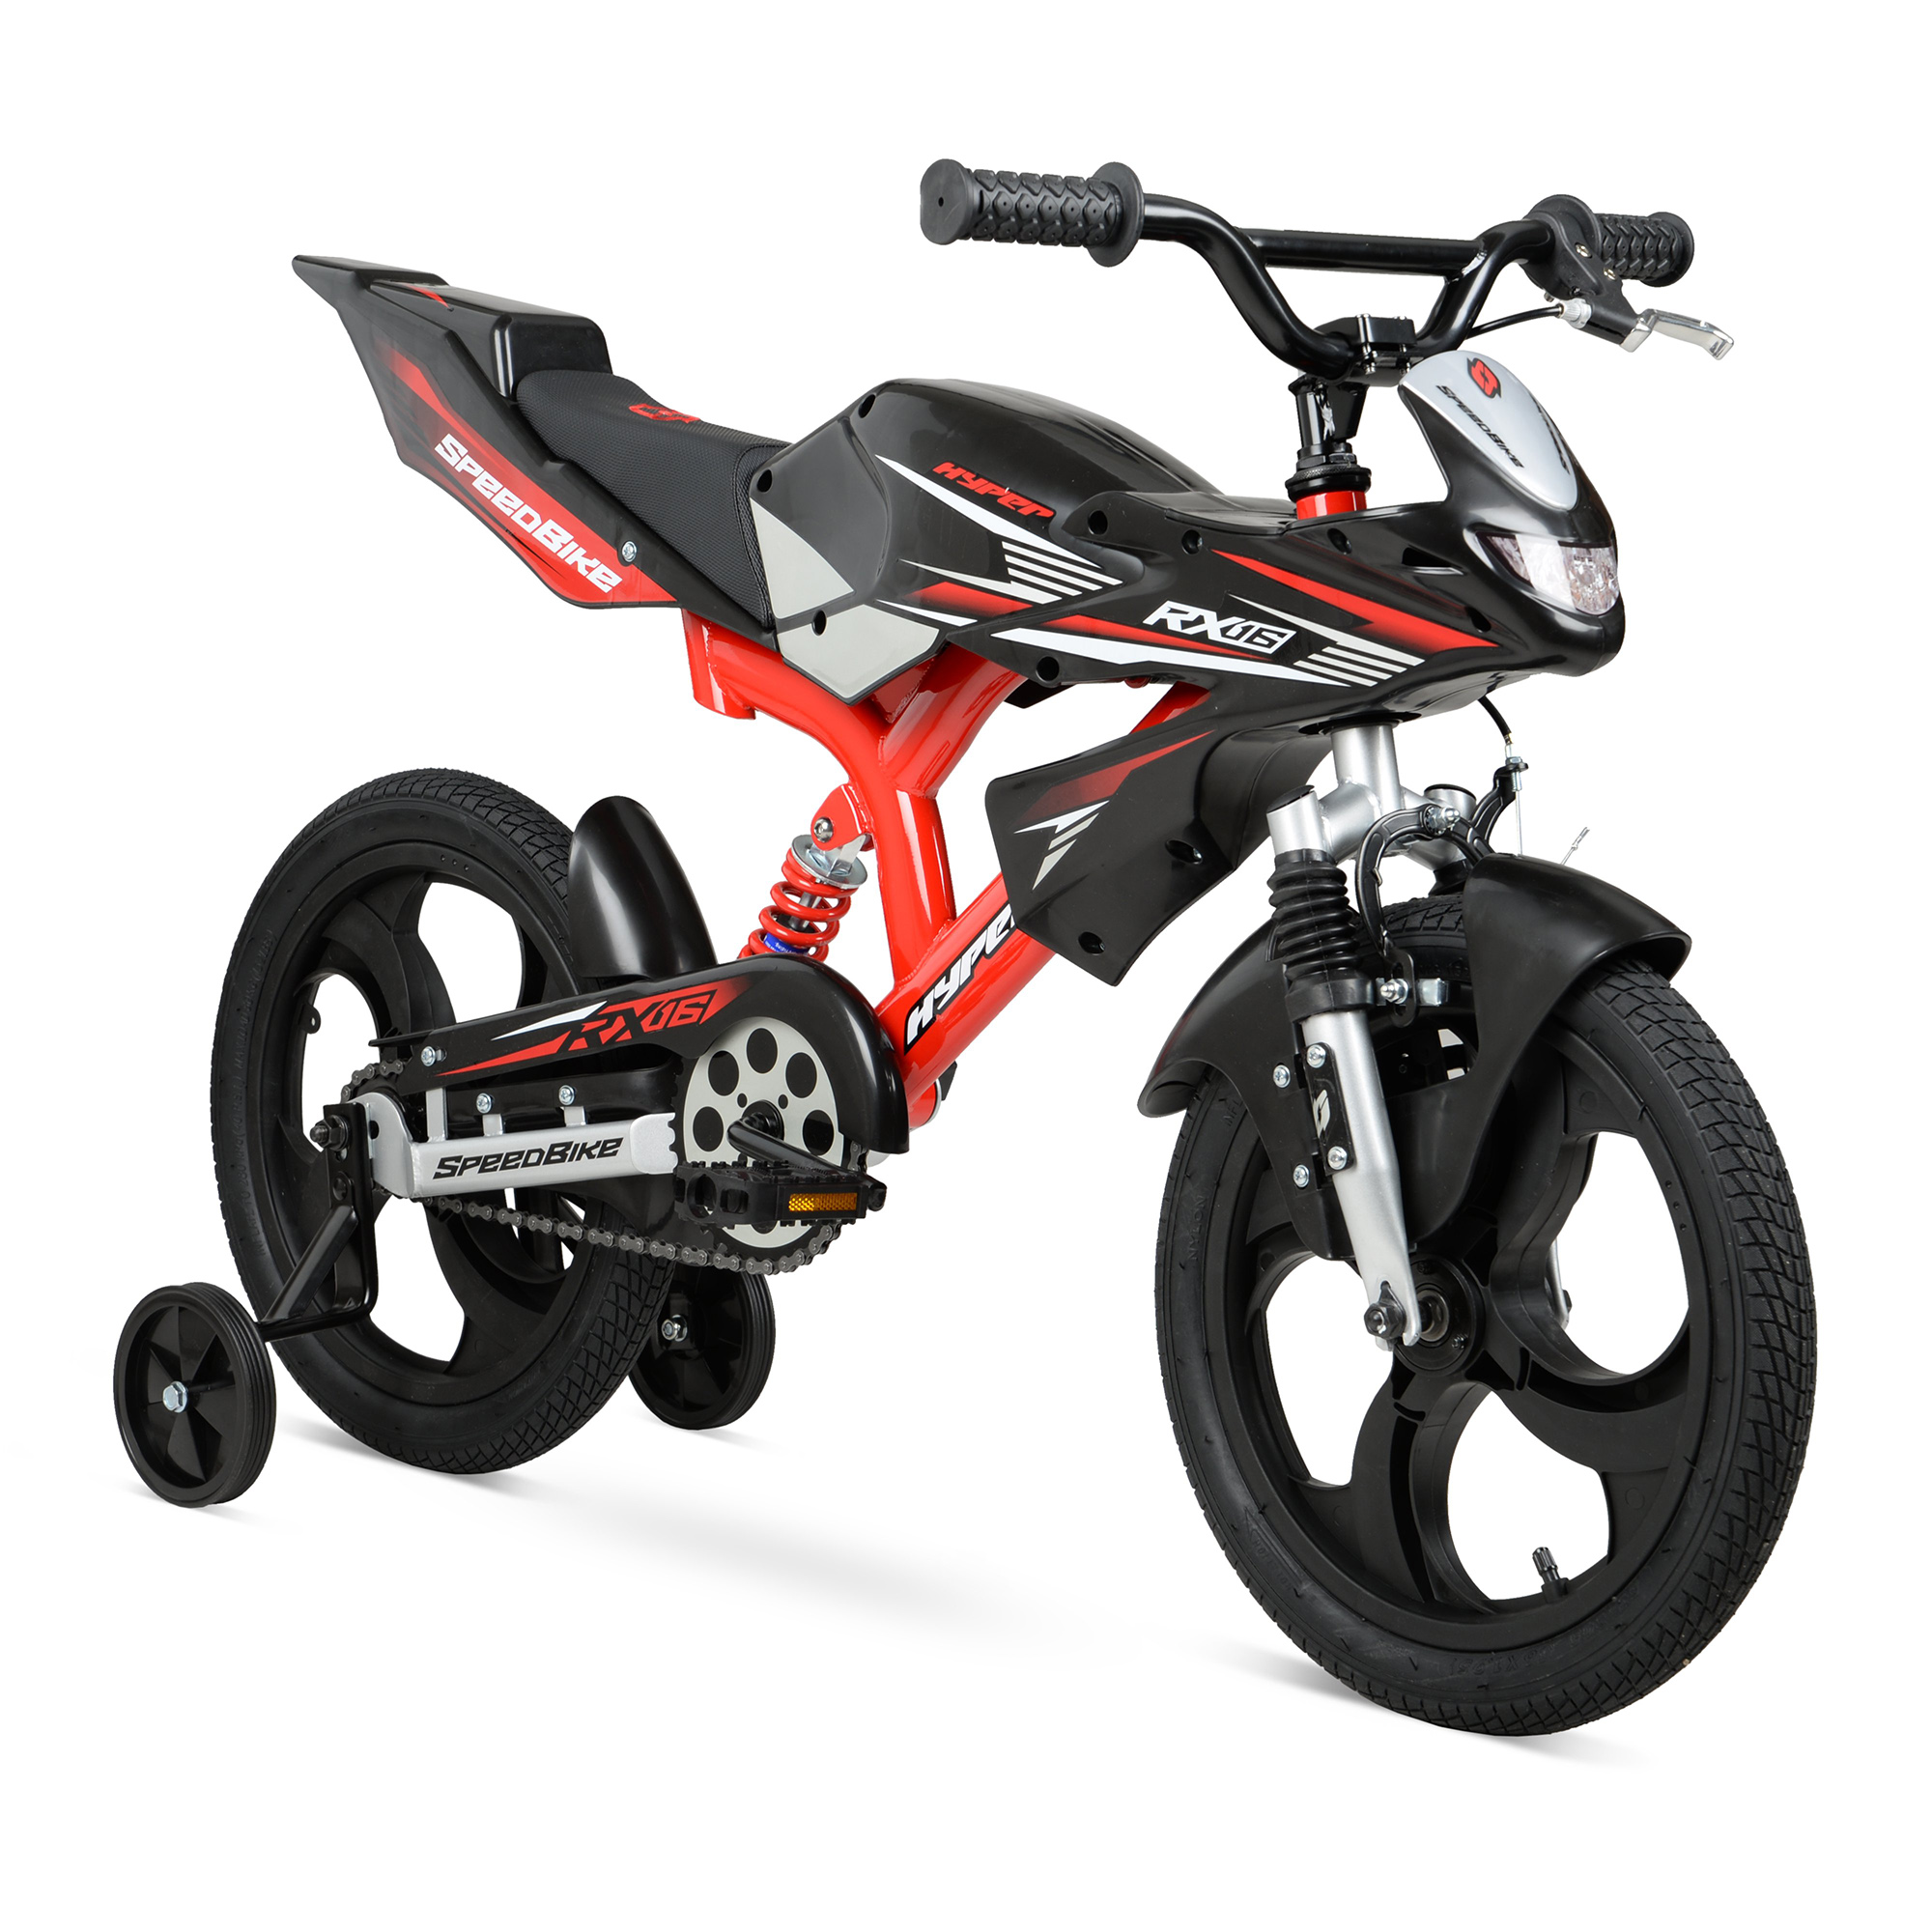 "Click here to buy Hyper Bicycles 16"" Speedbike Kids Bike by Hyper Bicylces."